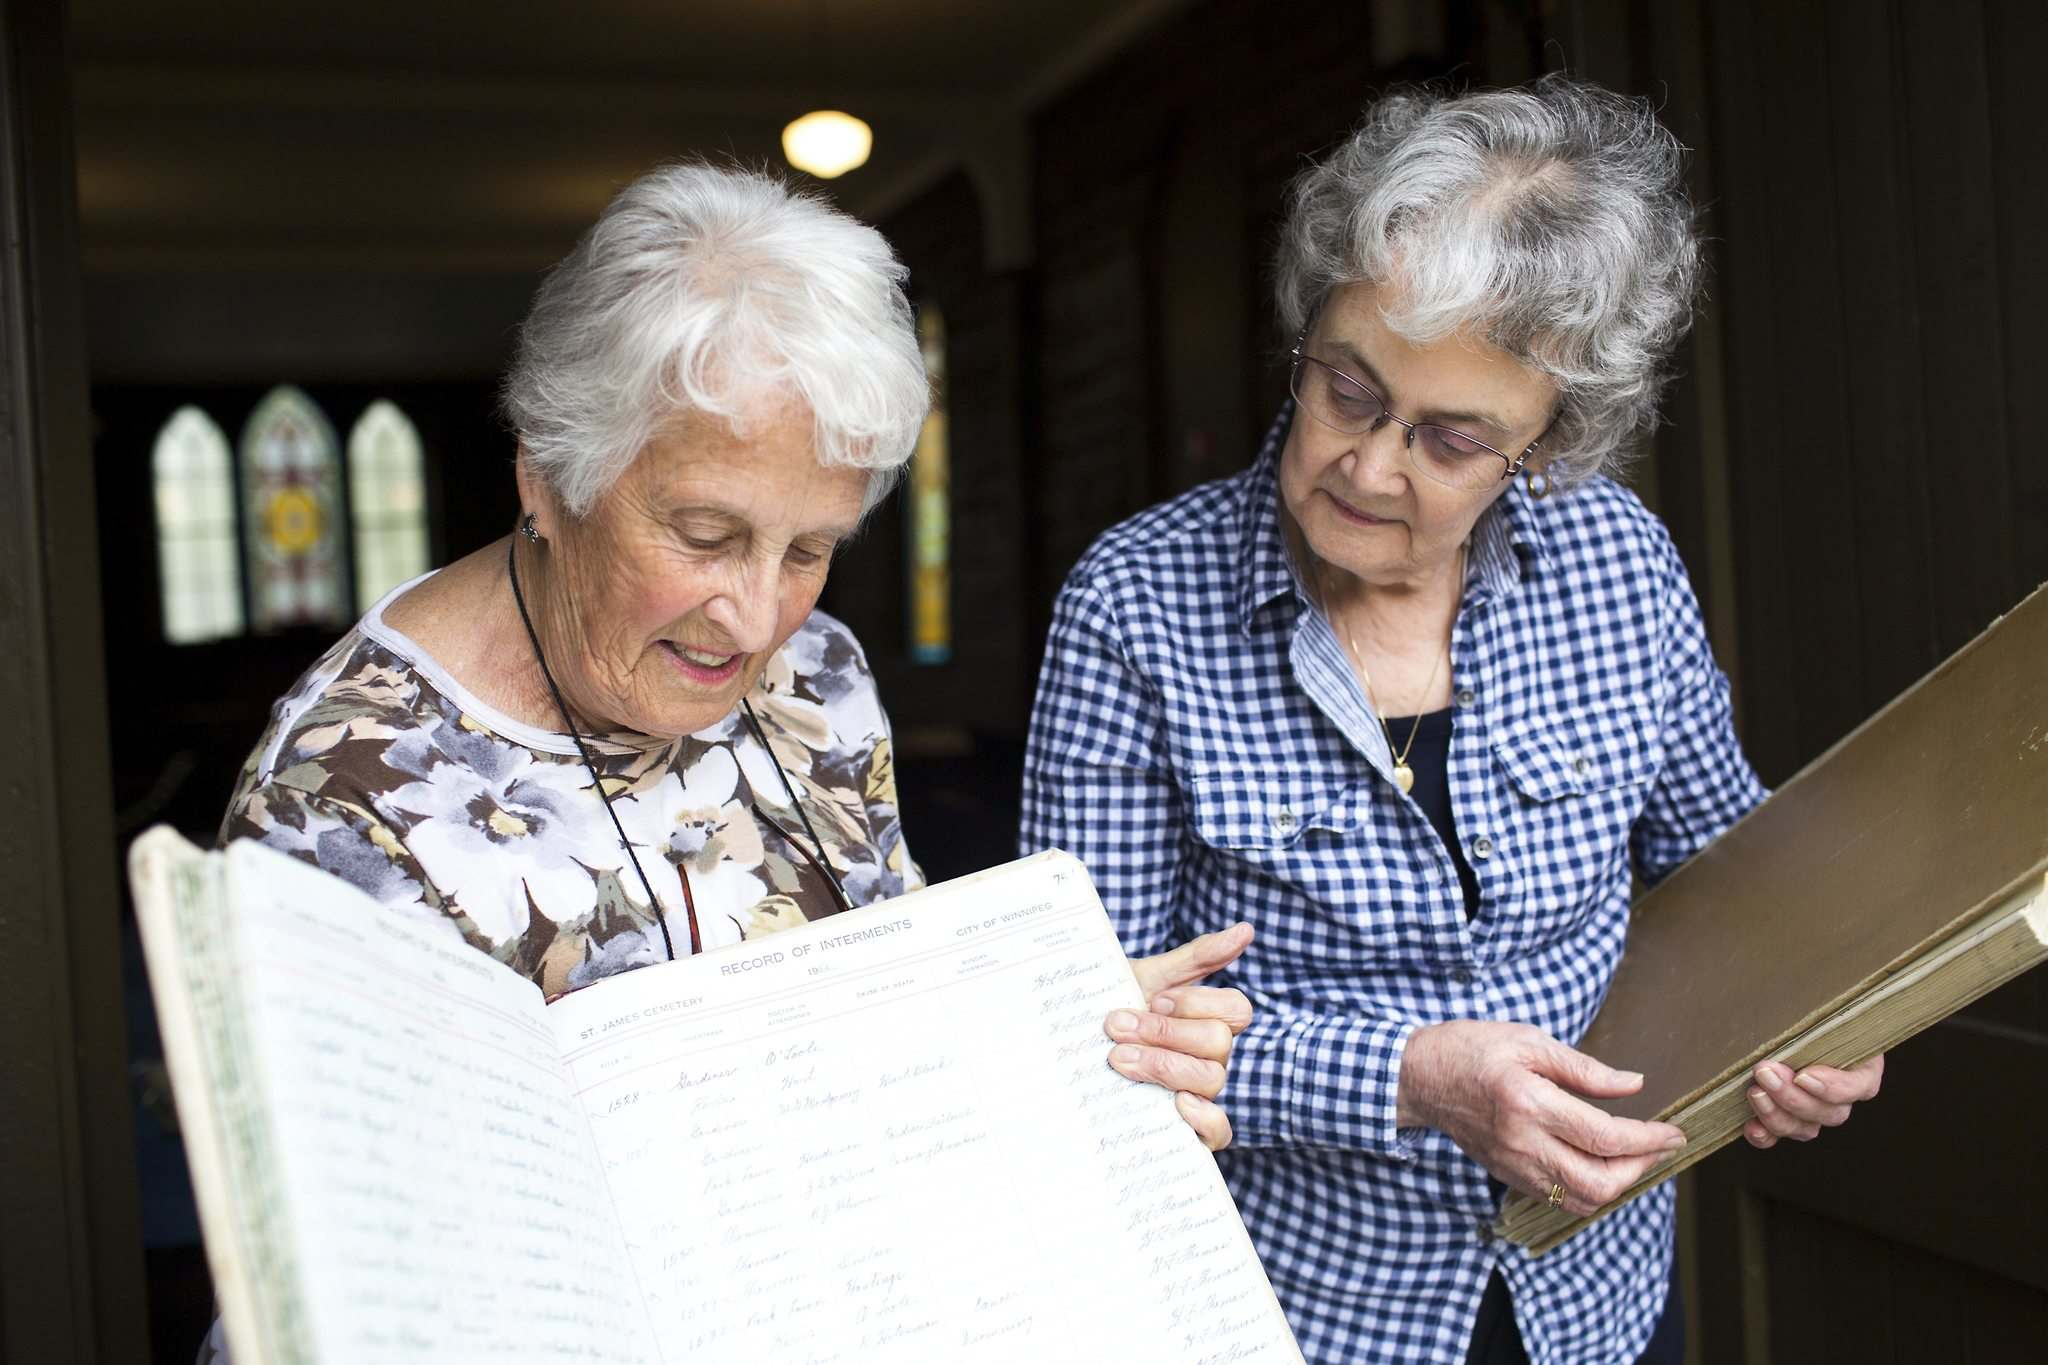 Margaret Steele (left) and Rosalie Gill found records in a missing register at St. James Anglican Church with information about over 2,800 miscarried or stillborn babies. (Mikaela MacKenzie photos / Winnipeg Free Press)